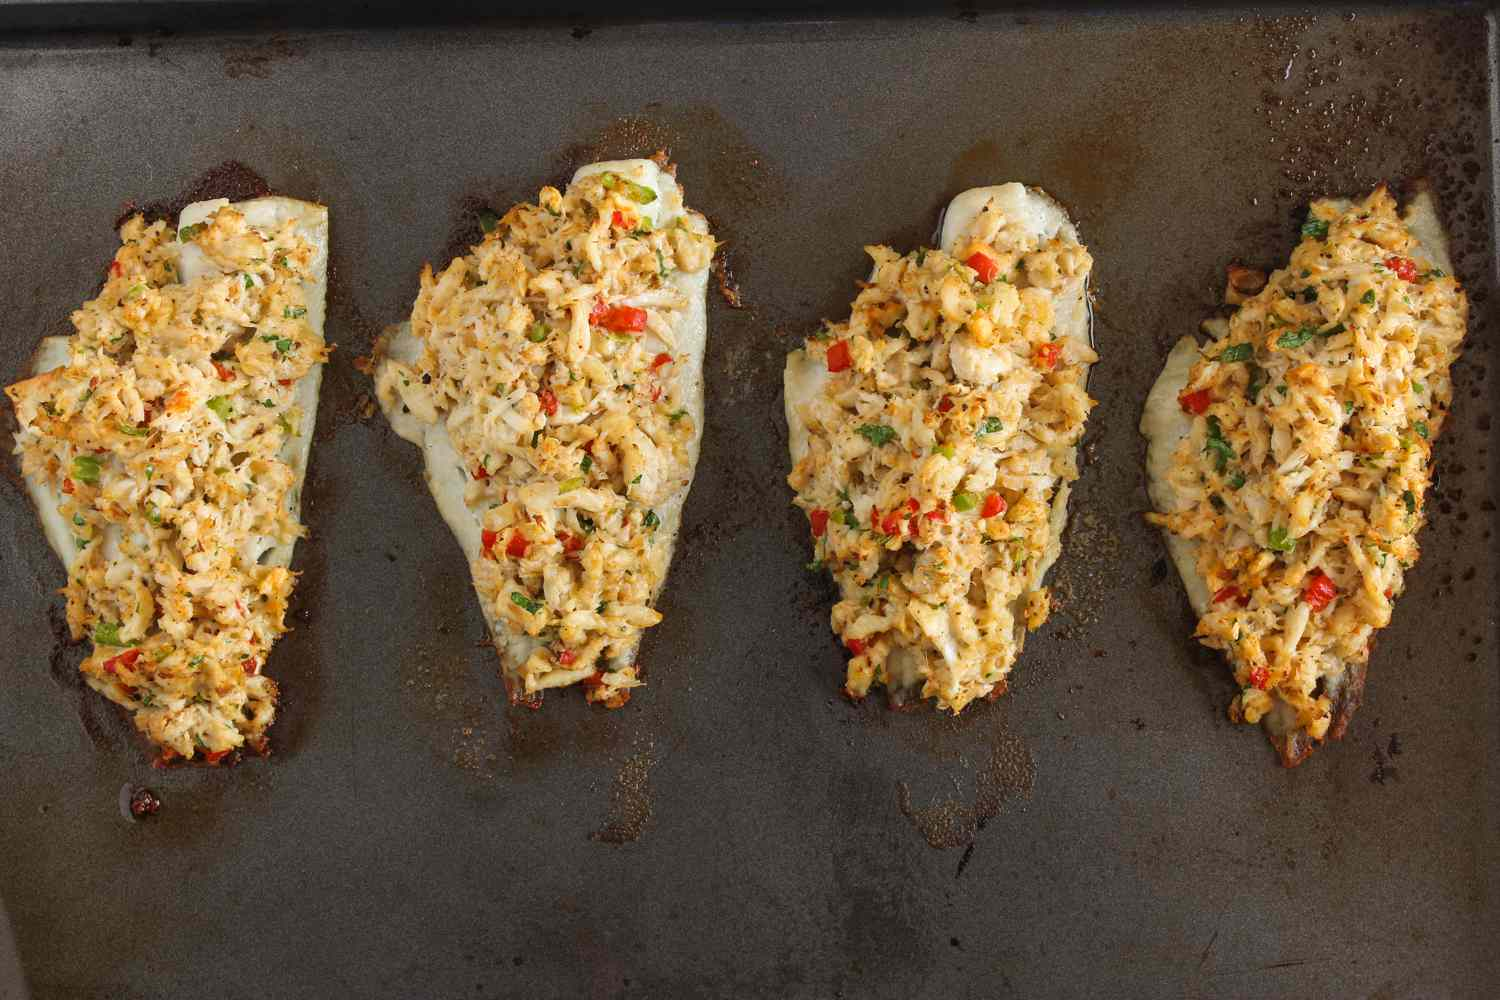 Stuffed flounder with crabmeat baking on pan